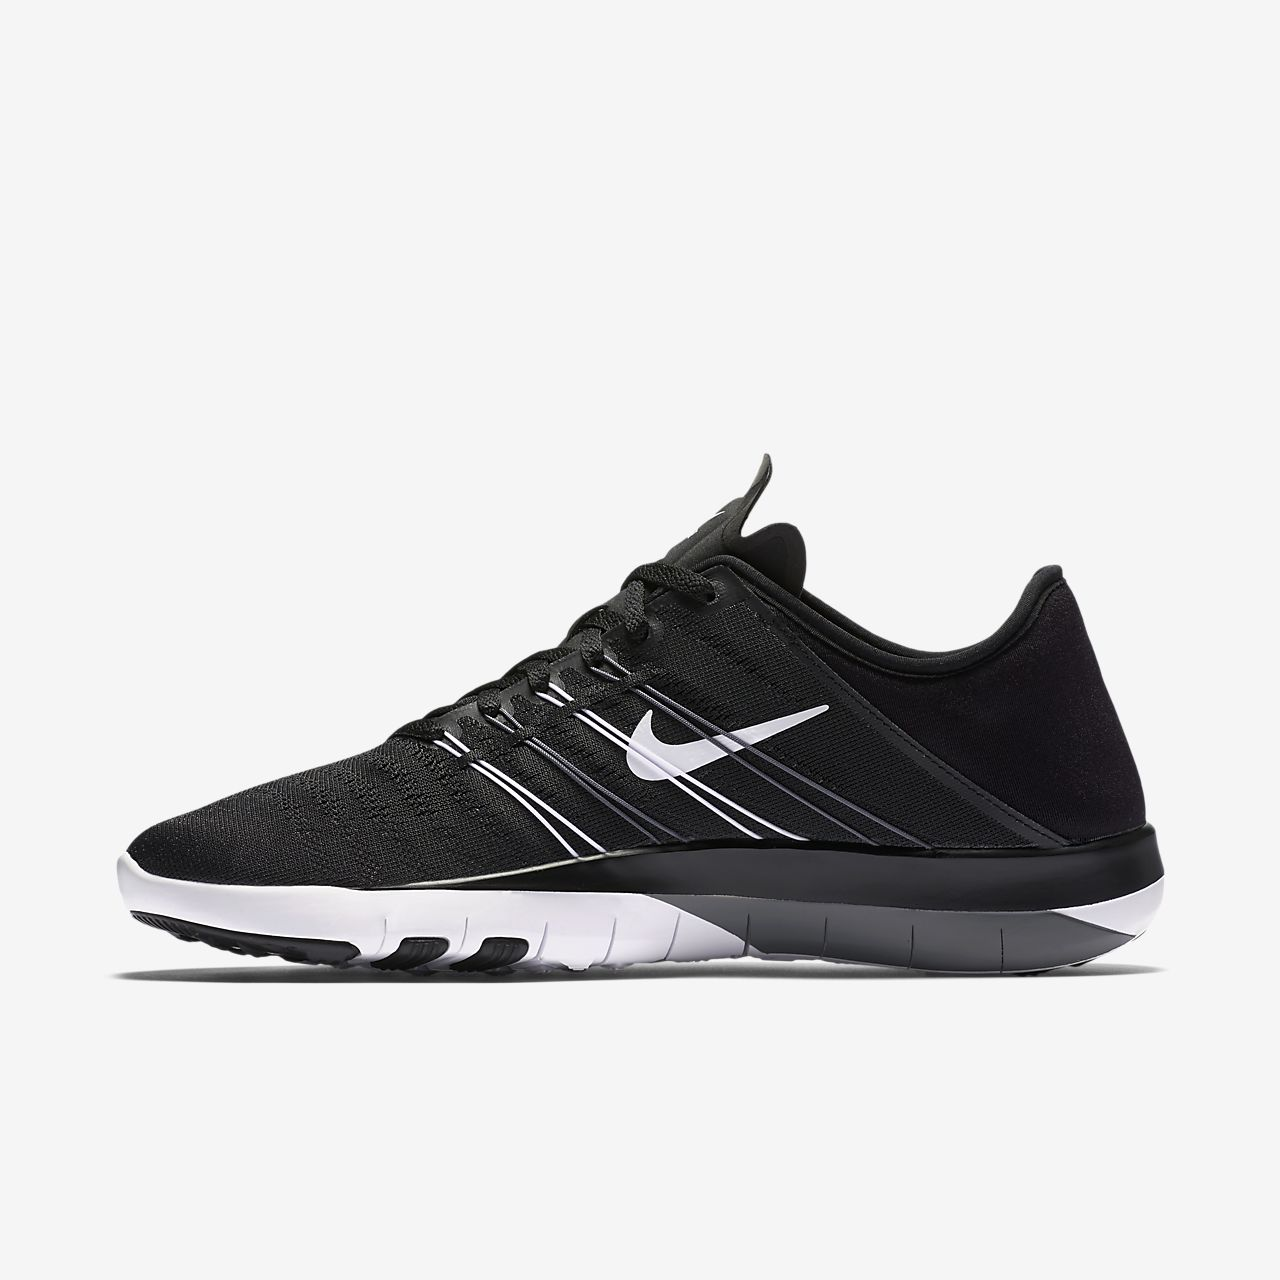 Marques Chaussure femme Nike femme Wmns Nike Free Tr 6 Black/White-Cool Grey